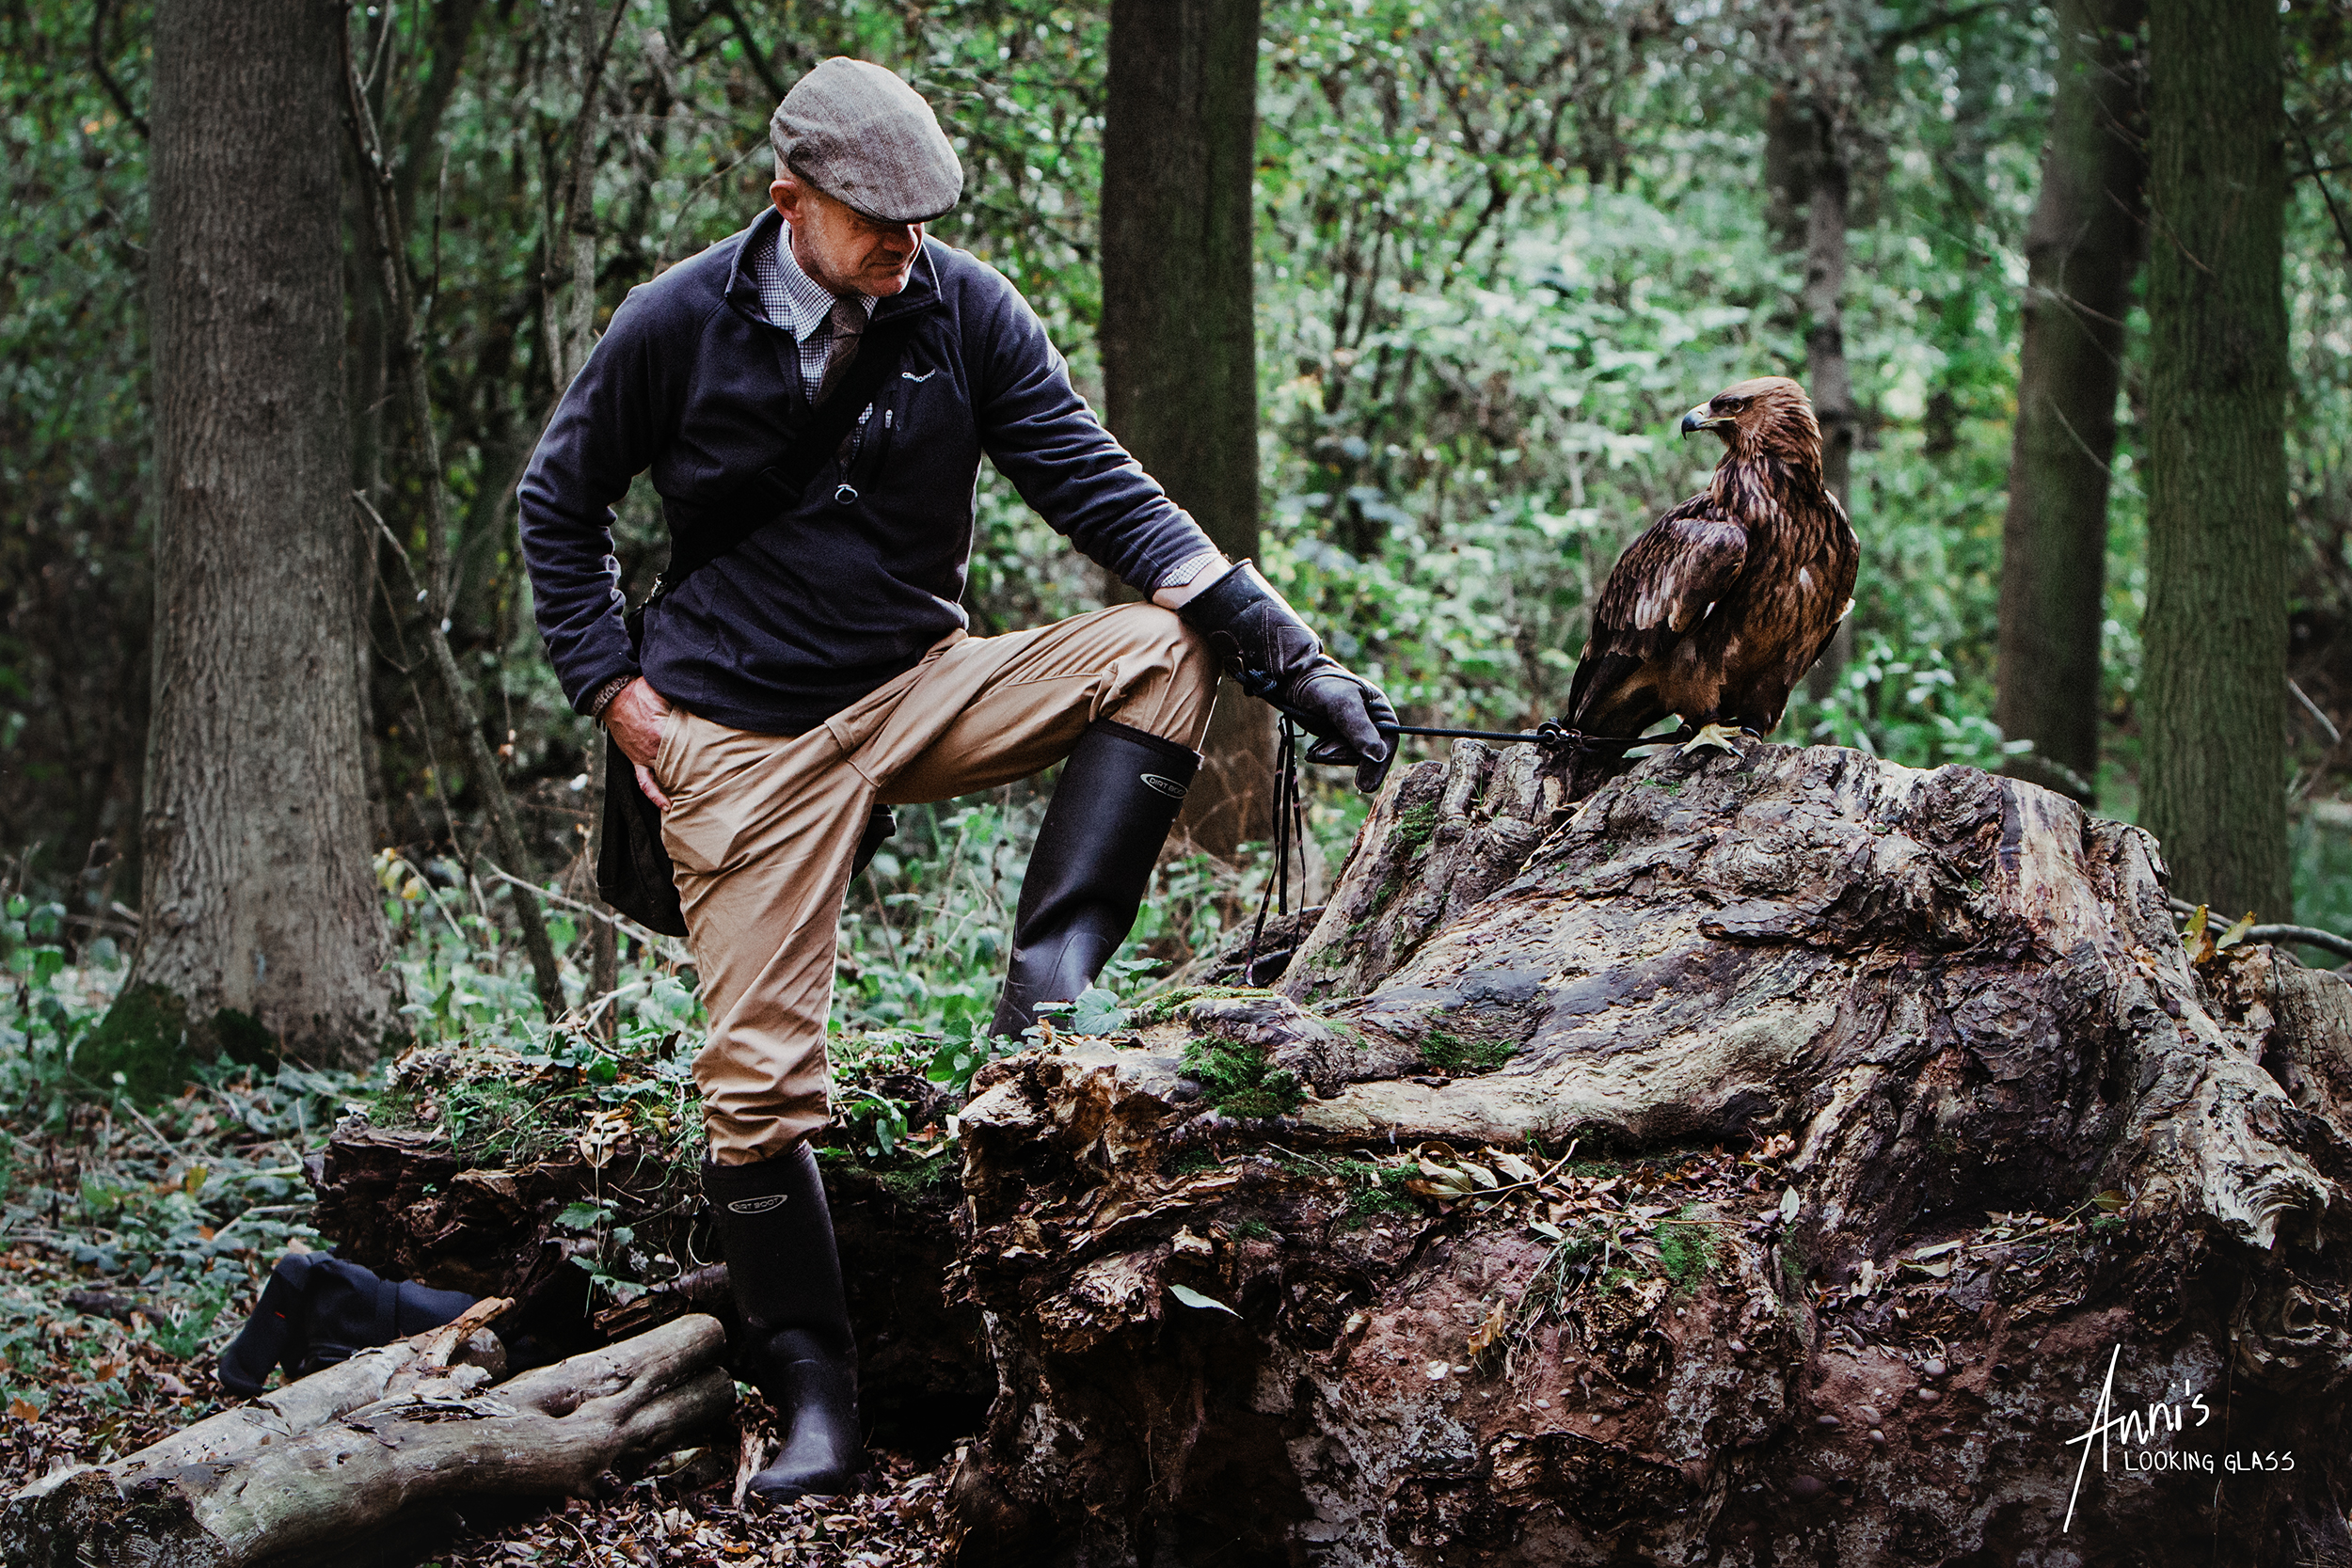 An eagle and its male handler in the forest